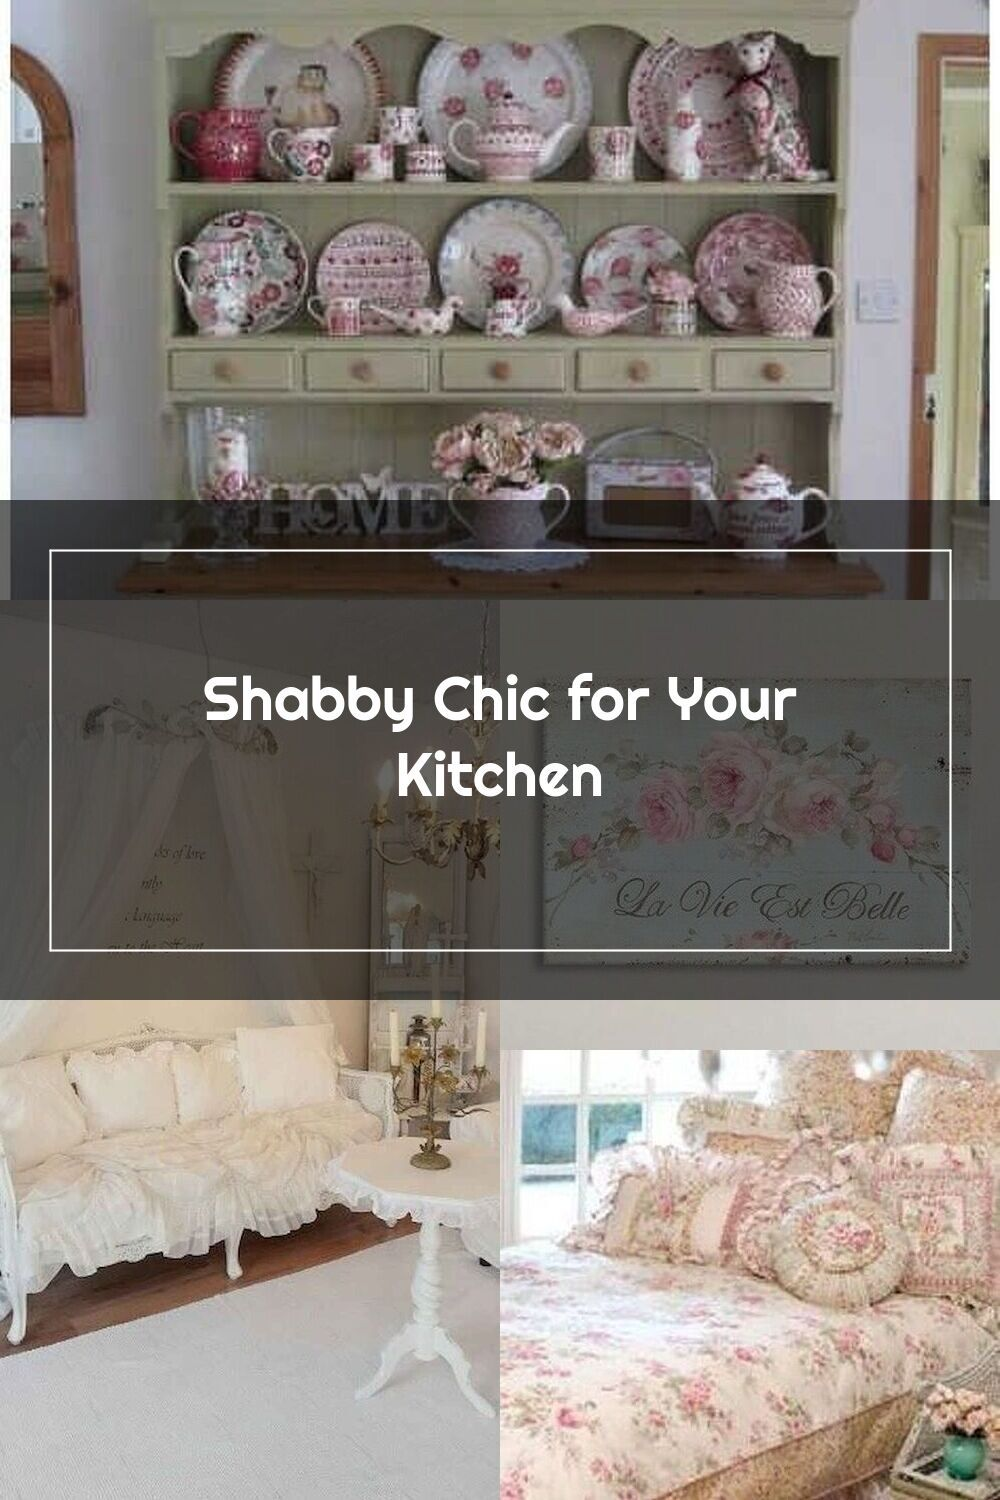 Popularity of Shabby Chic Furniture Increases Day by Day